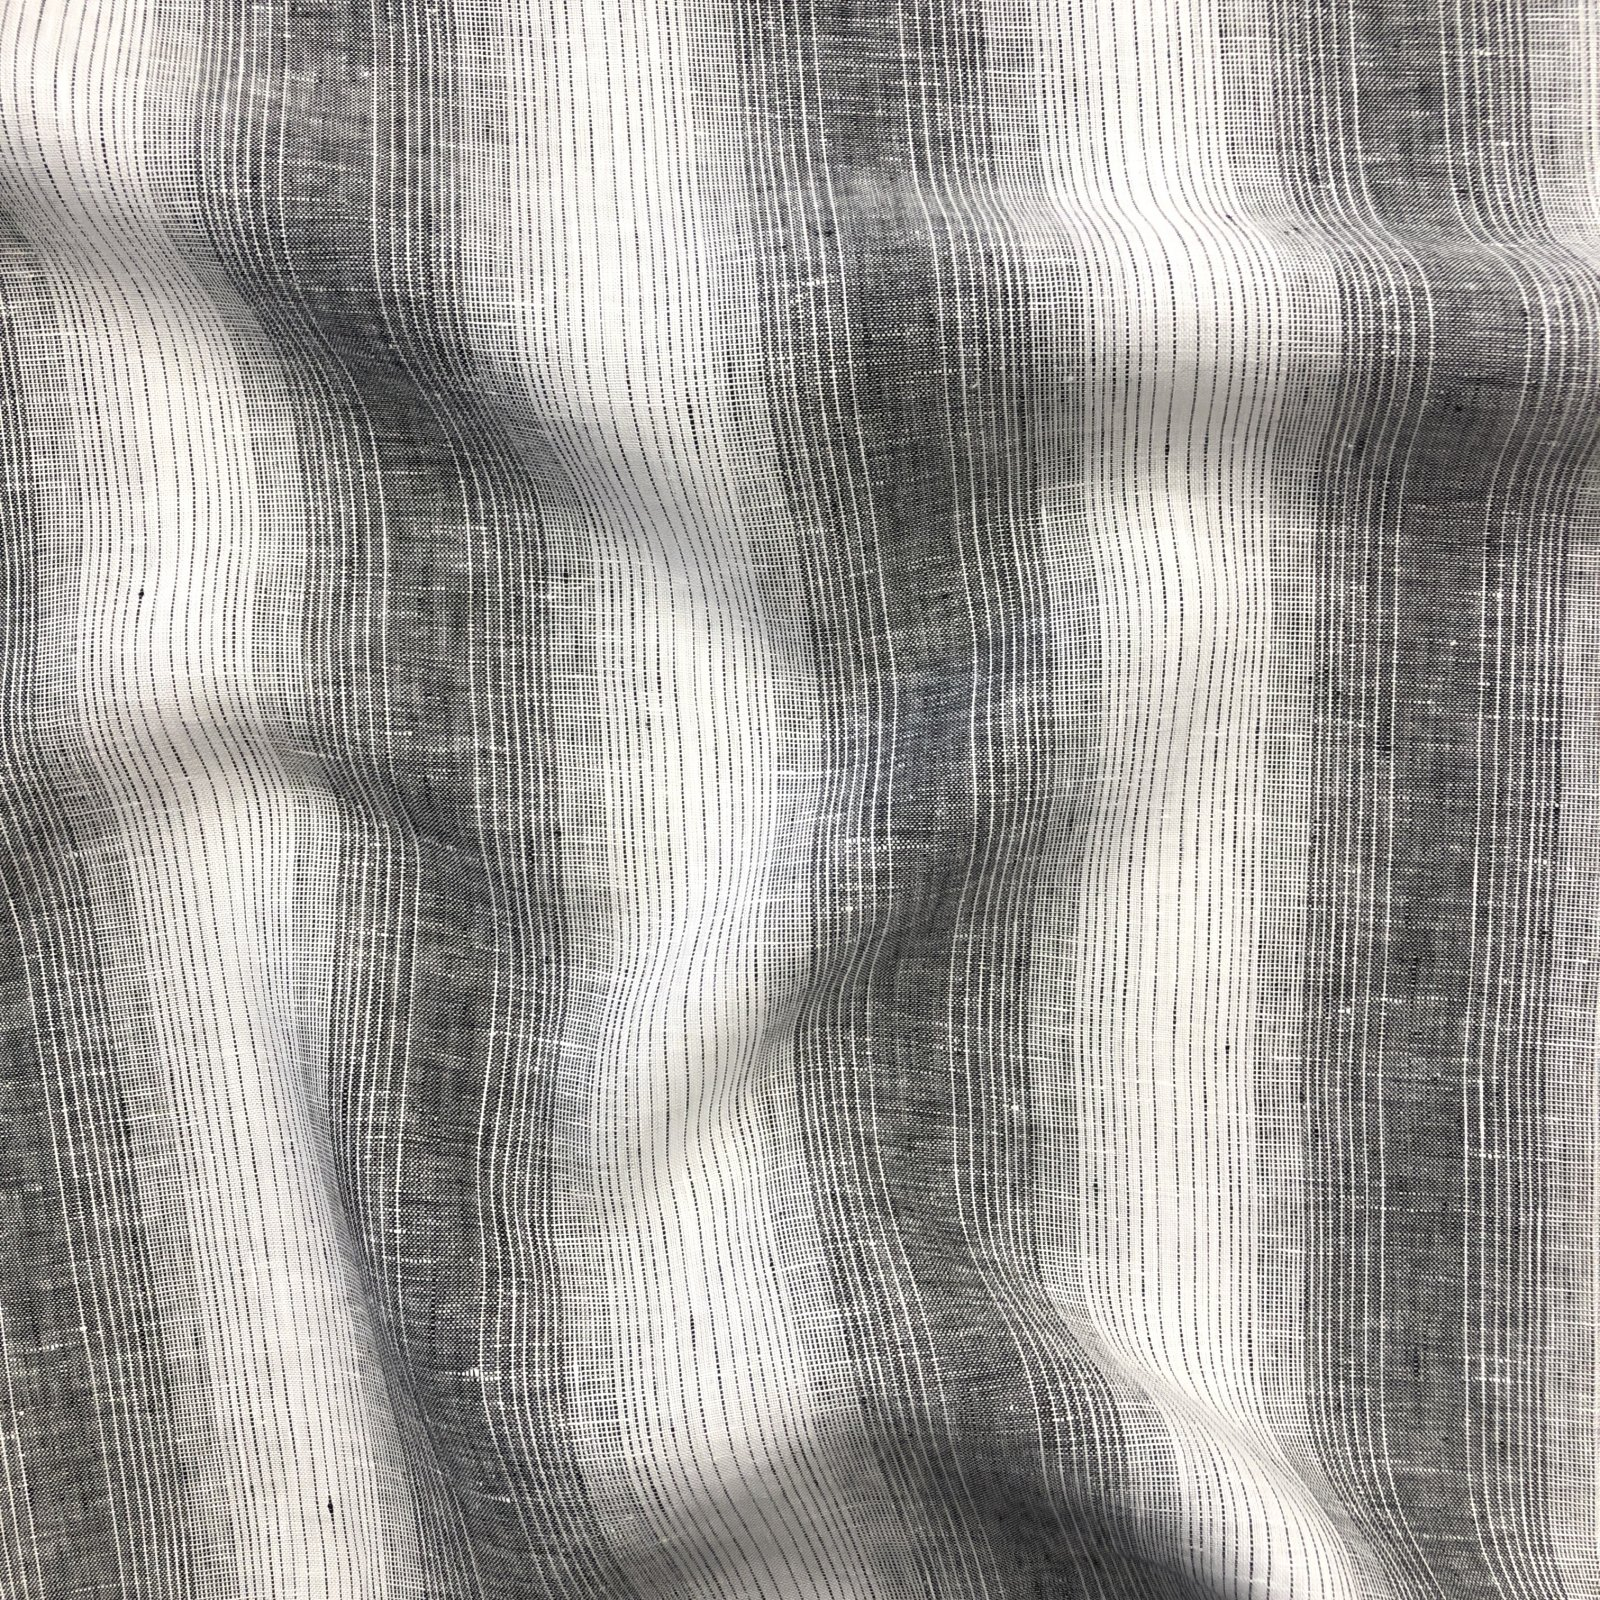 100% Linen - Yarn Dyed Varied Stripe - Black